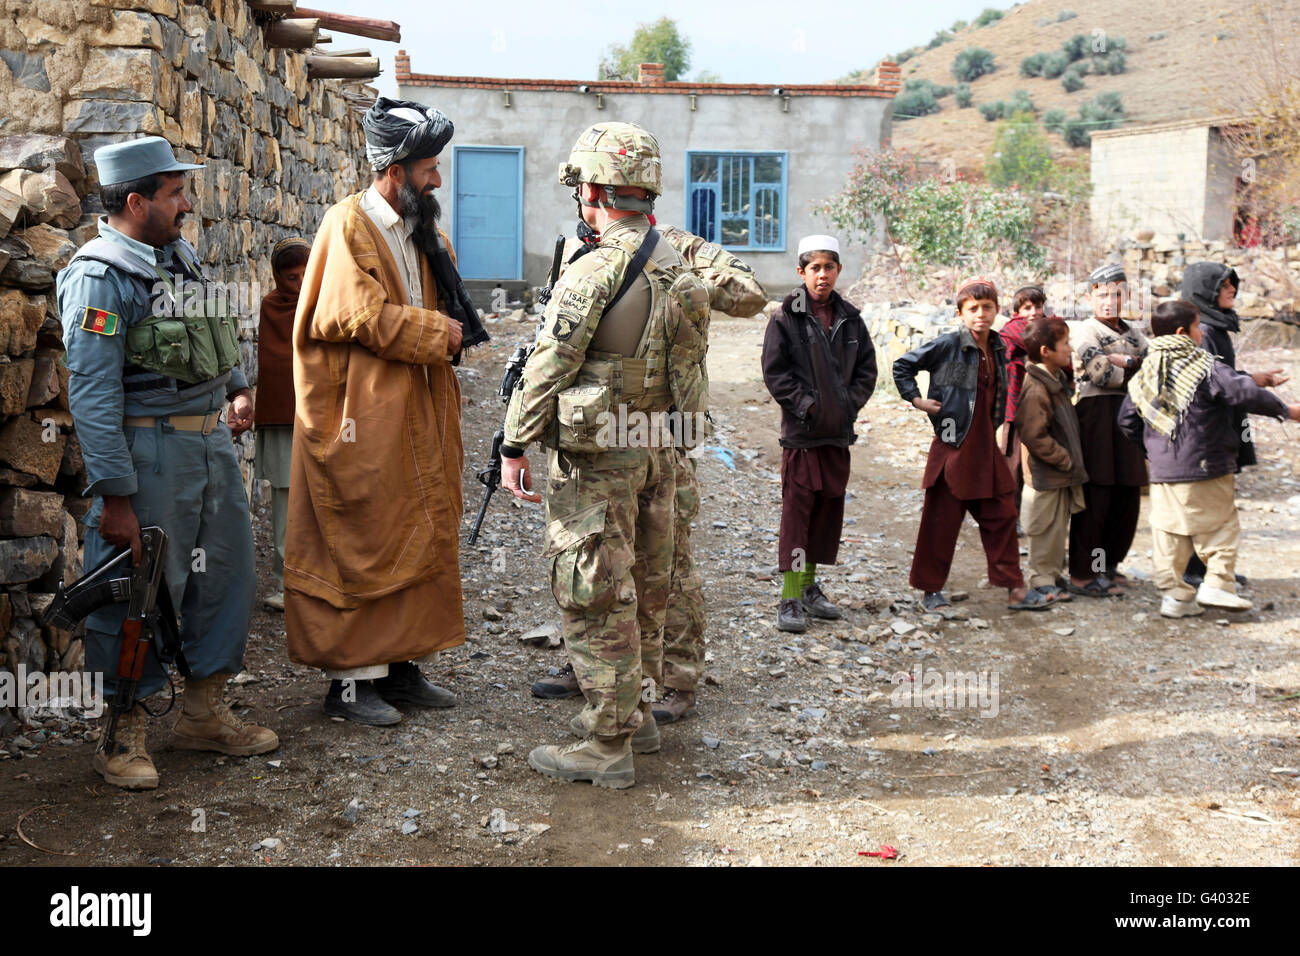 Afghan Uniform Police Stockfotos & Afghan Uniform Police Bilder - Alamy